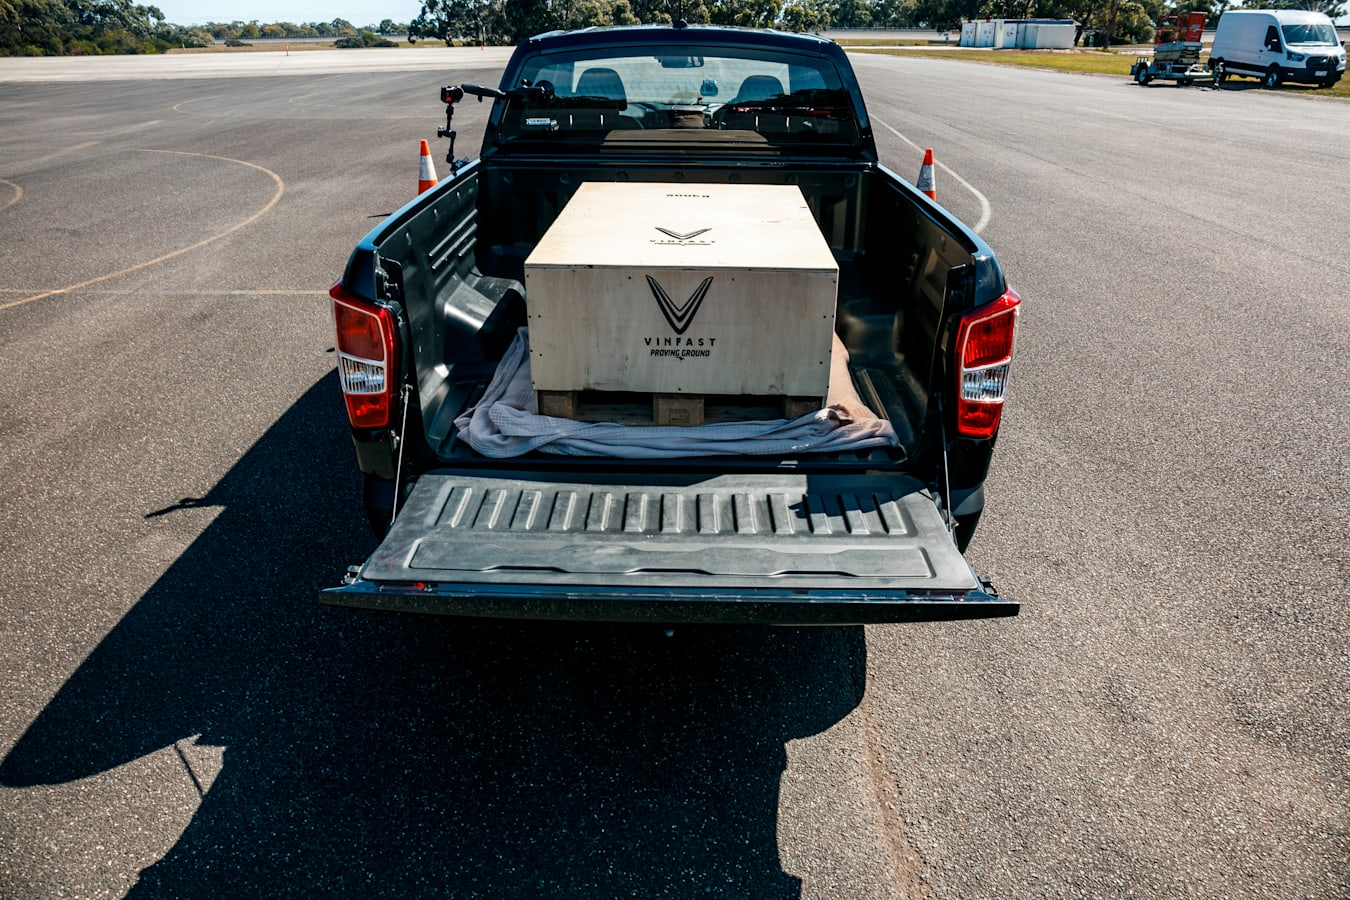 4 X 4 Australia Comparisons 2021 May 21 Ssang Yong Musso Unlimited XLV Rear Tray Size